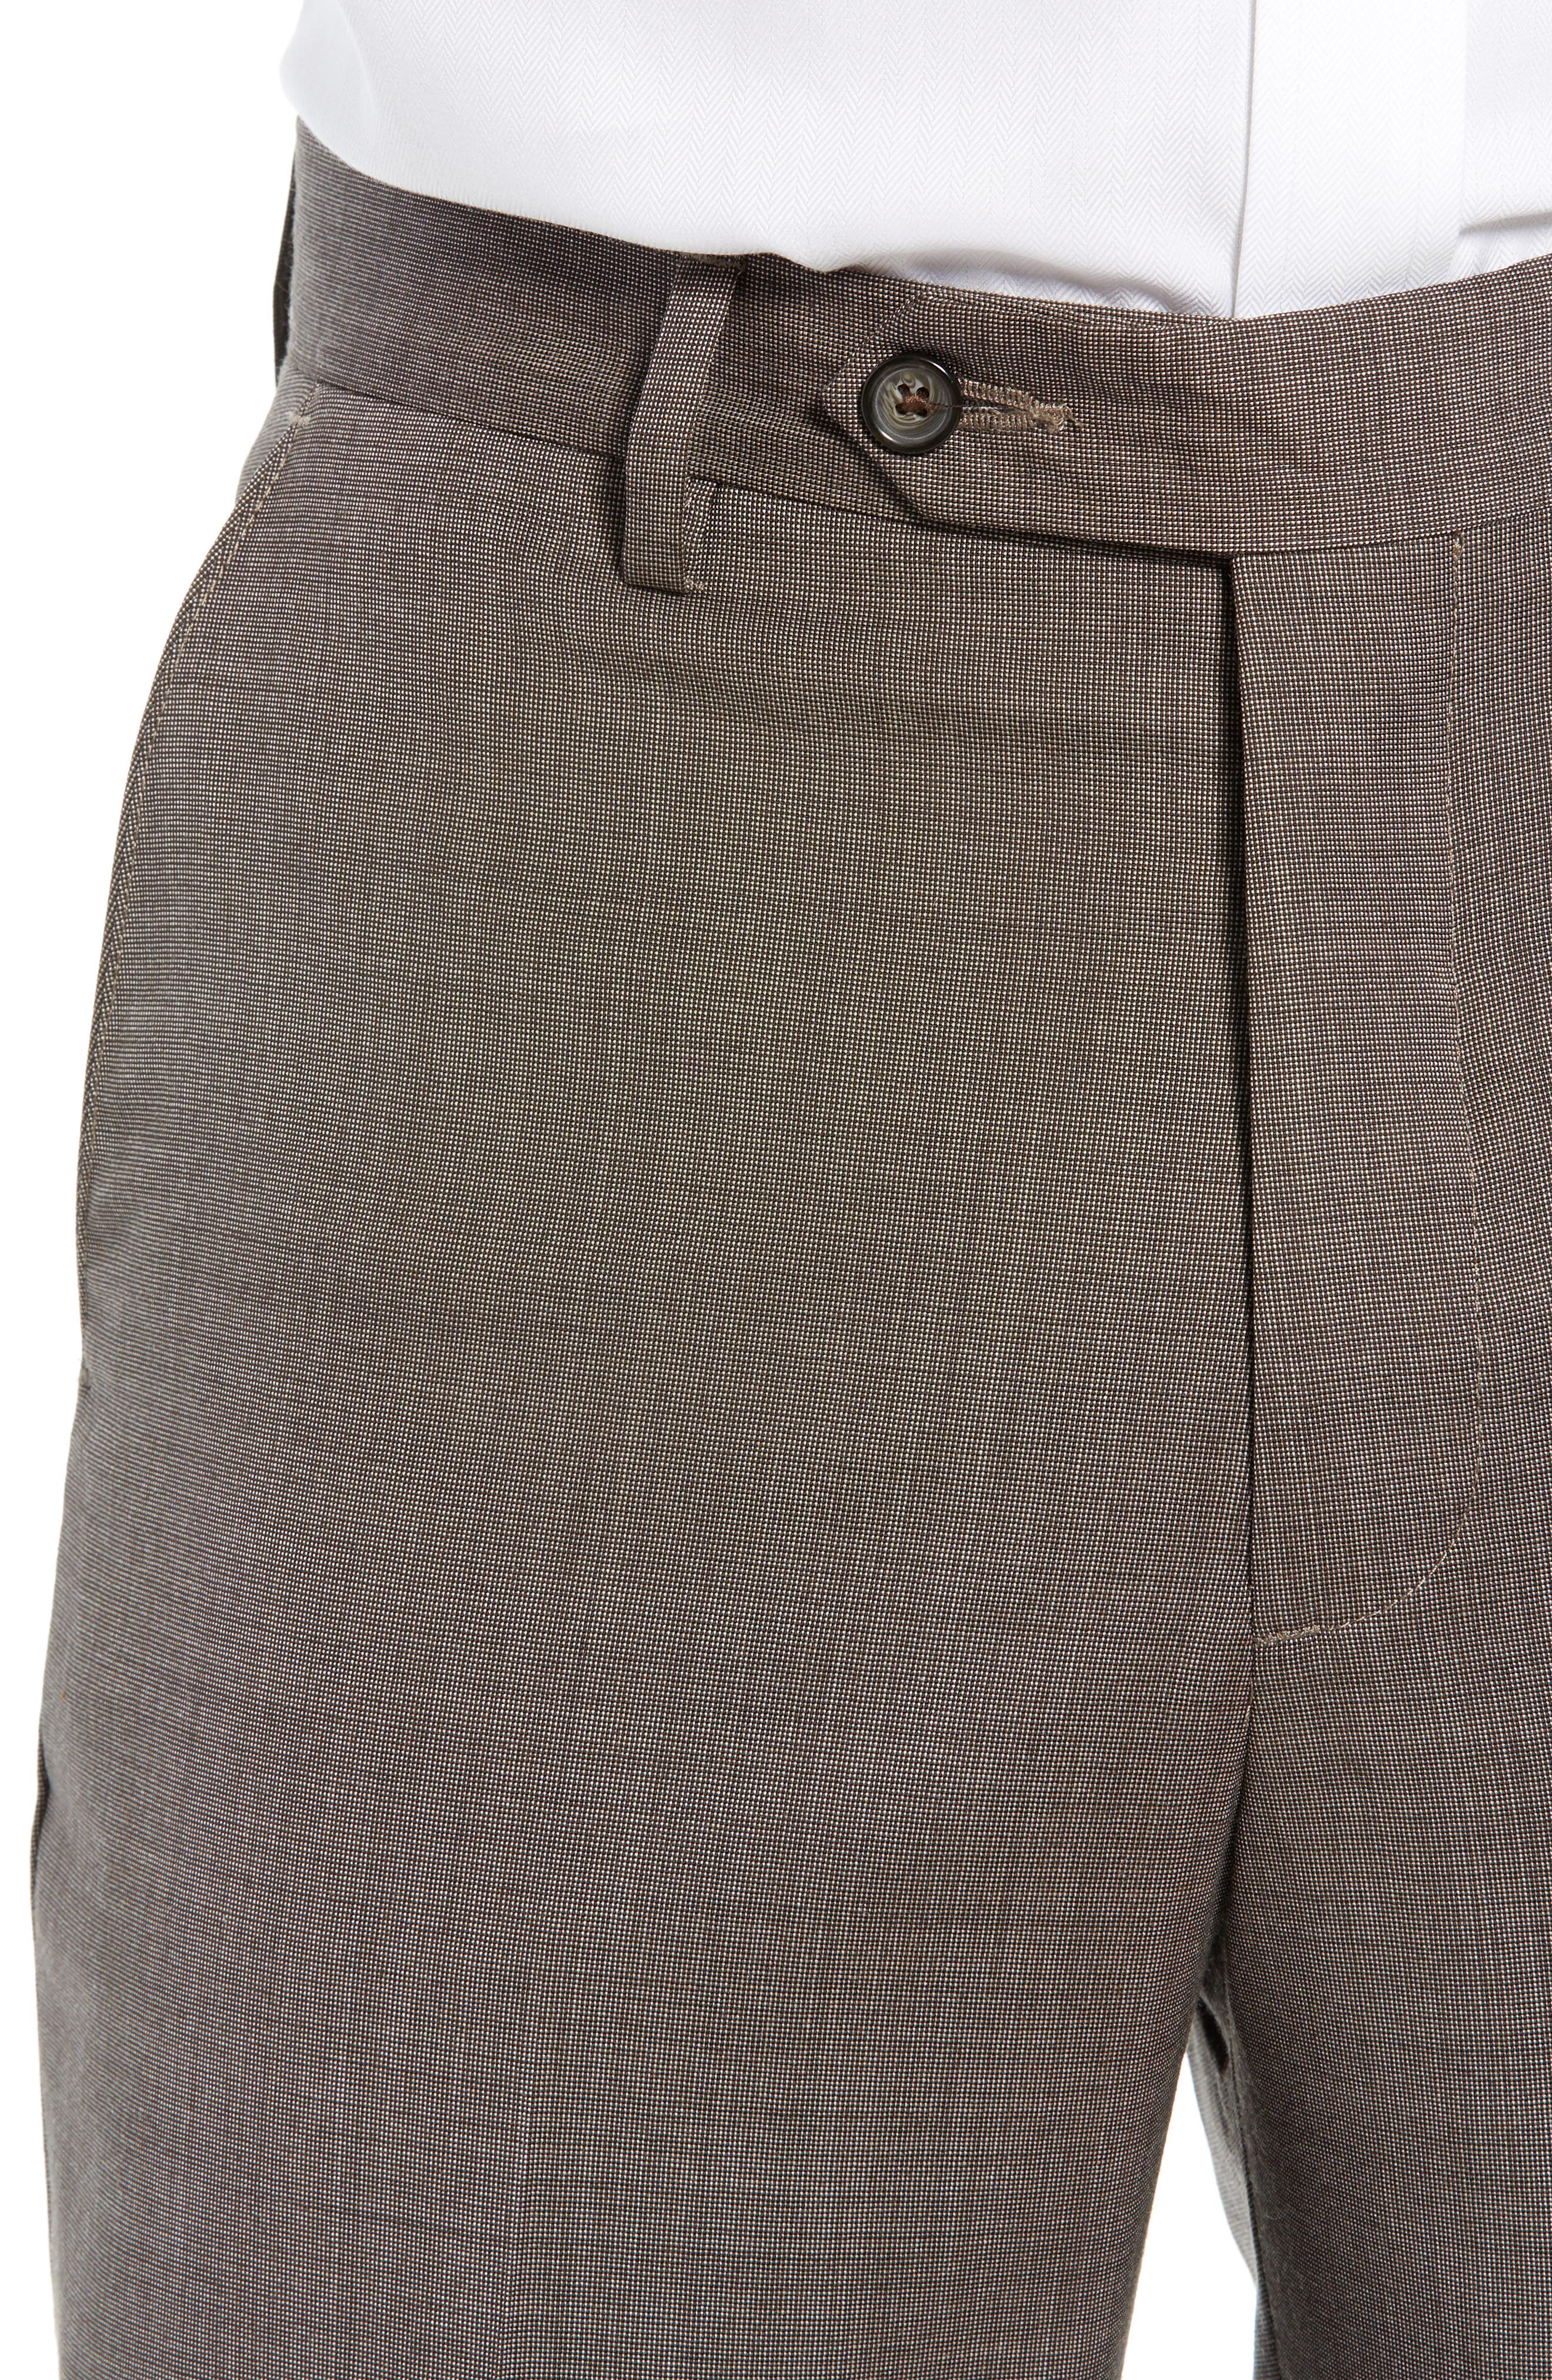 Manufacturing Flat Front Wool Trousers,                             Alternate thumbnail 4, color,                             BROWN